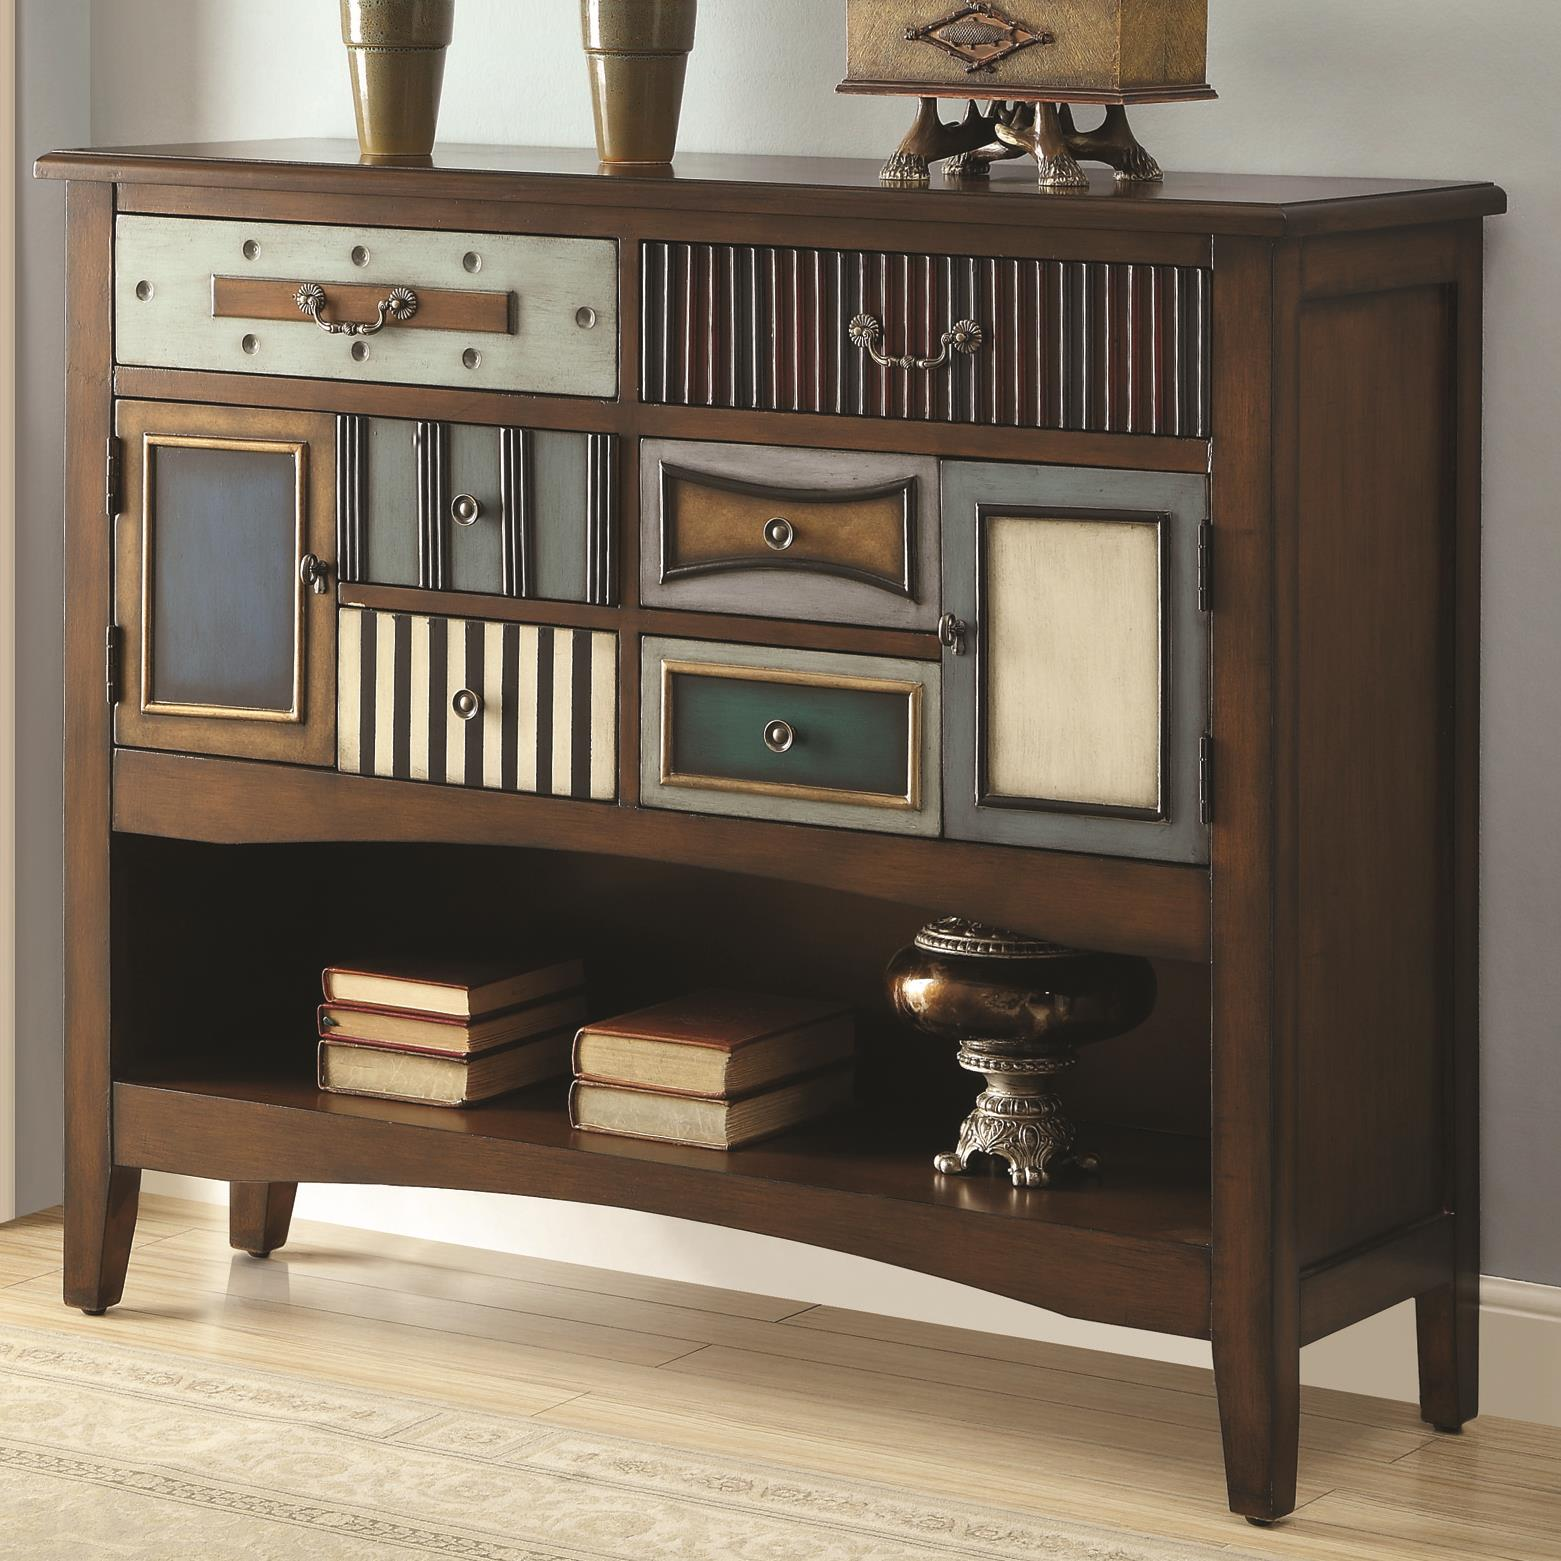 Coaster Accent Cabinets Accent Cabinet  - Item Number: 950329